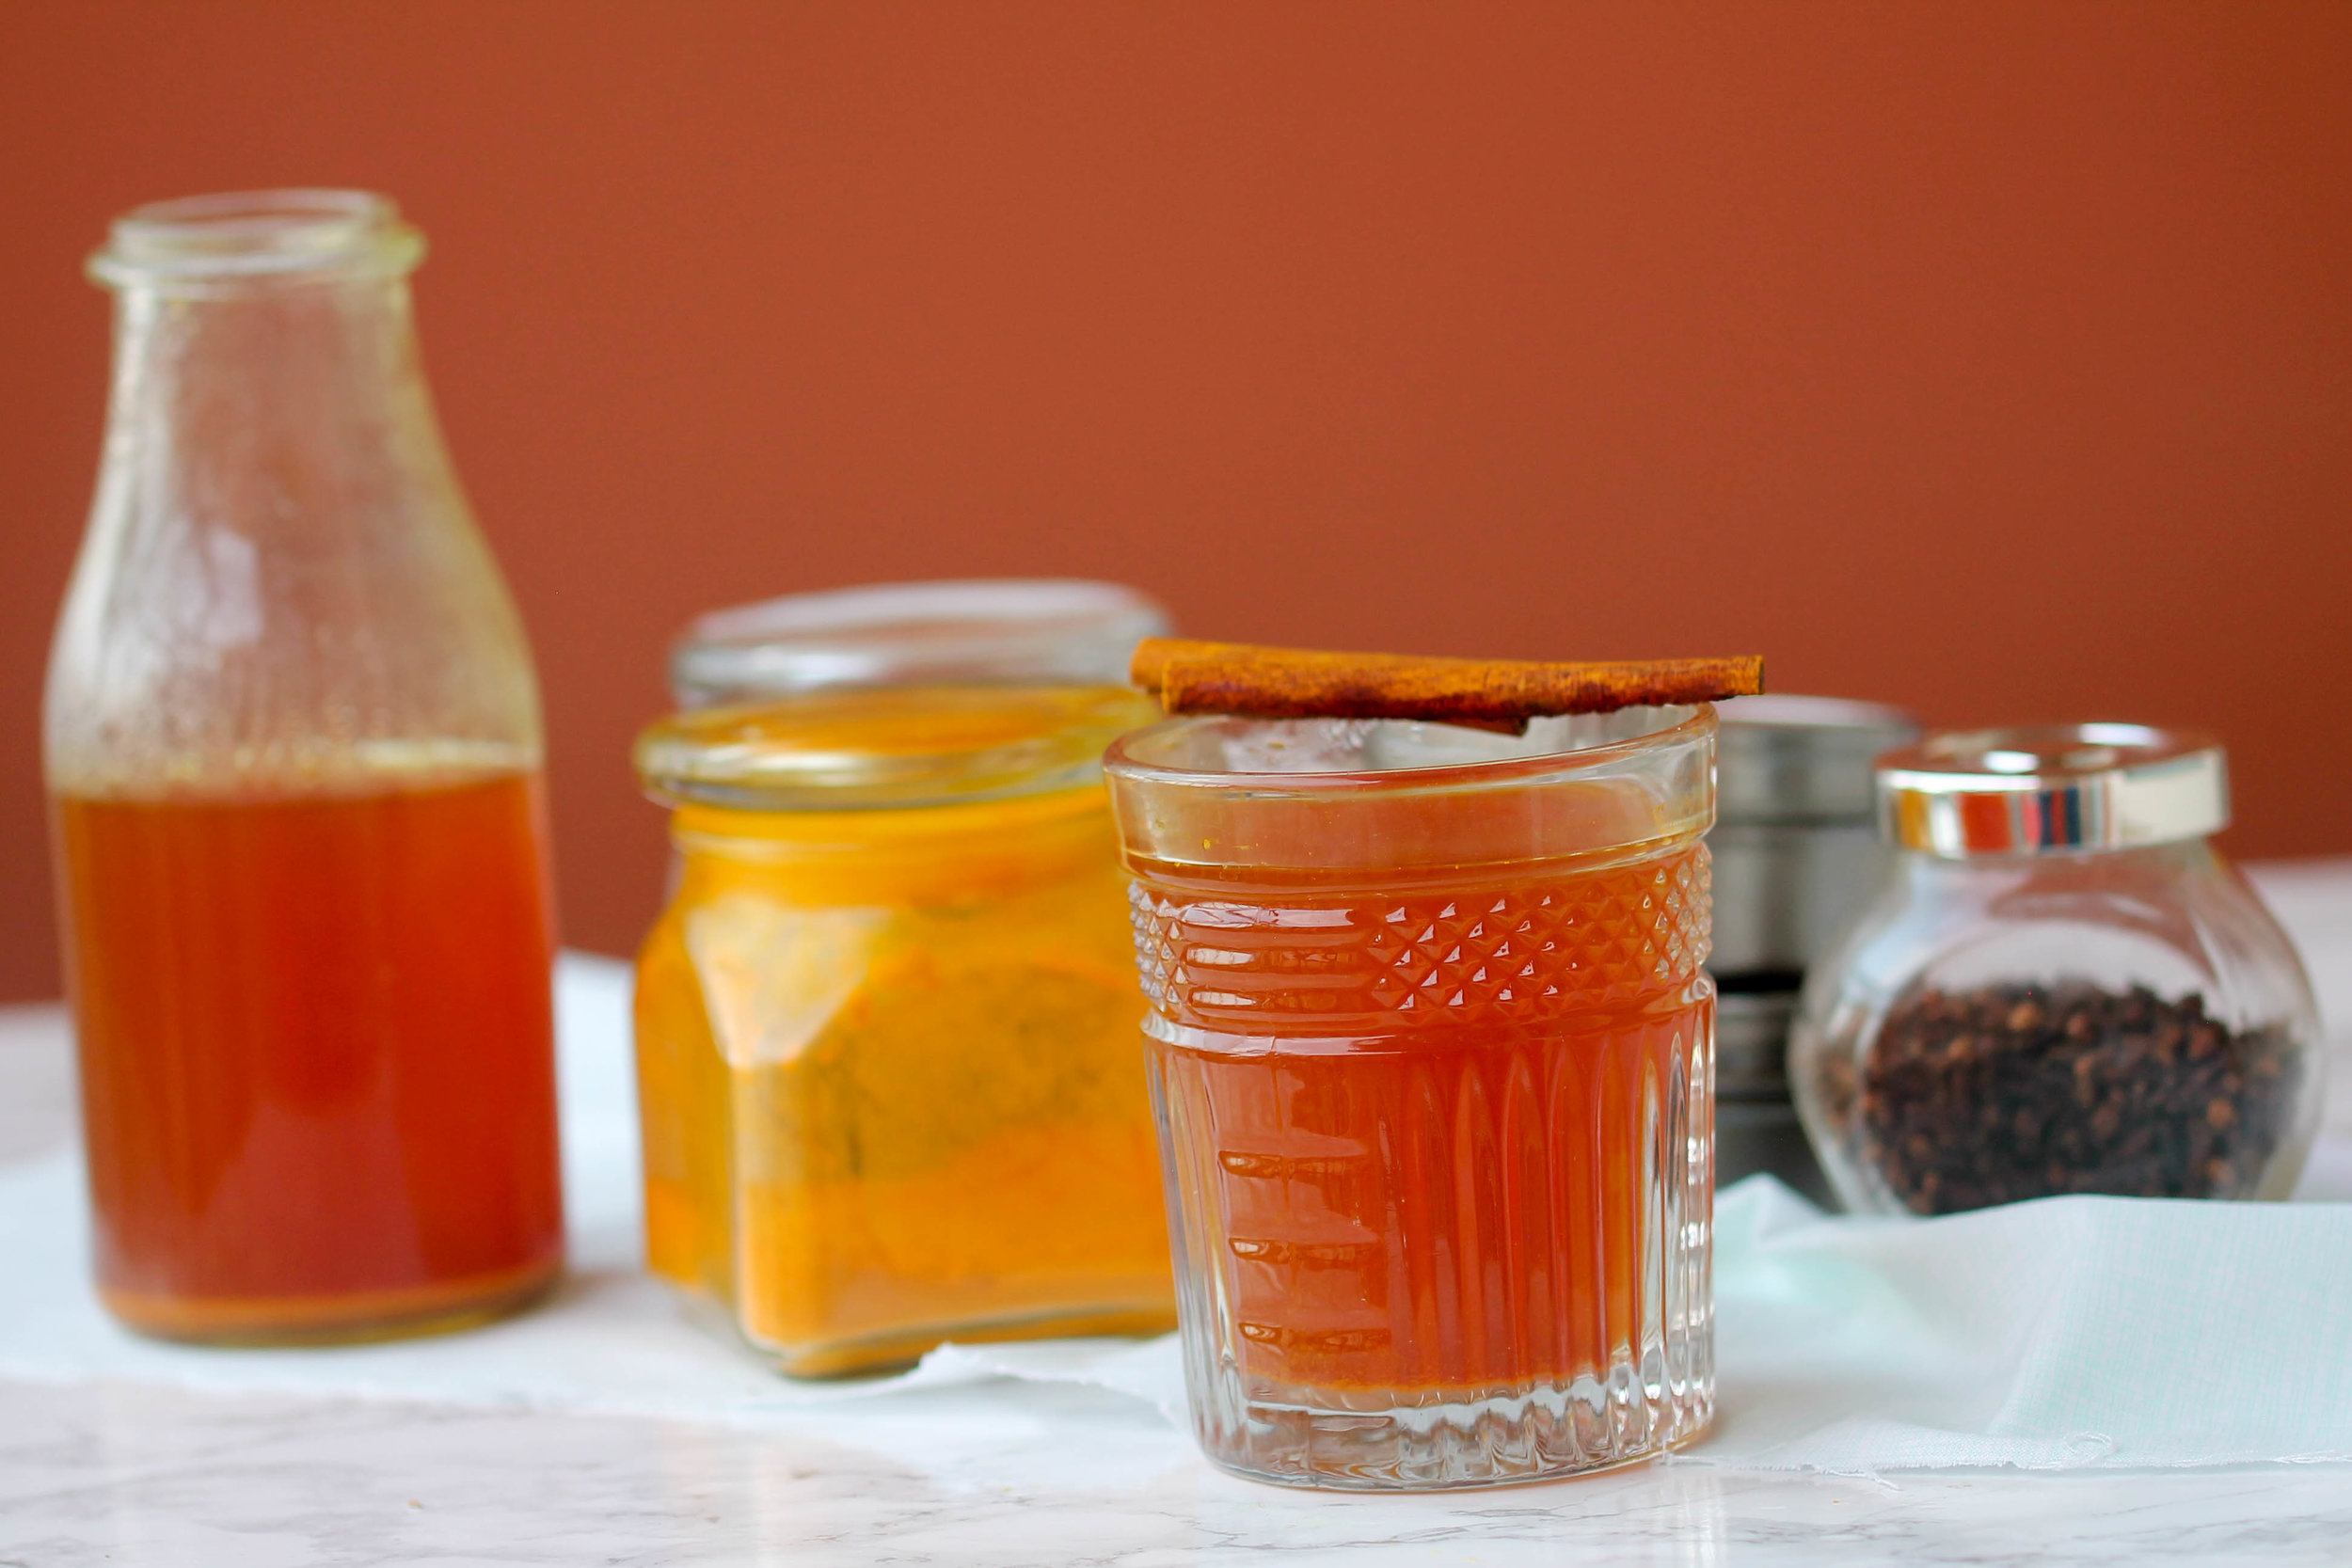 Homemade Cold and Cough Tonic